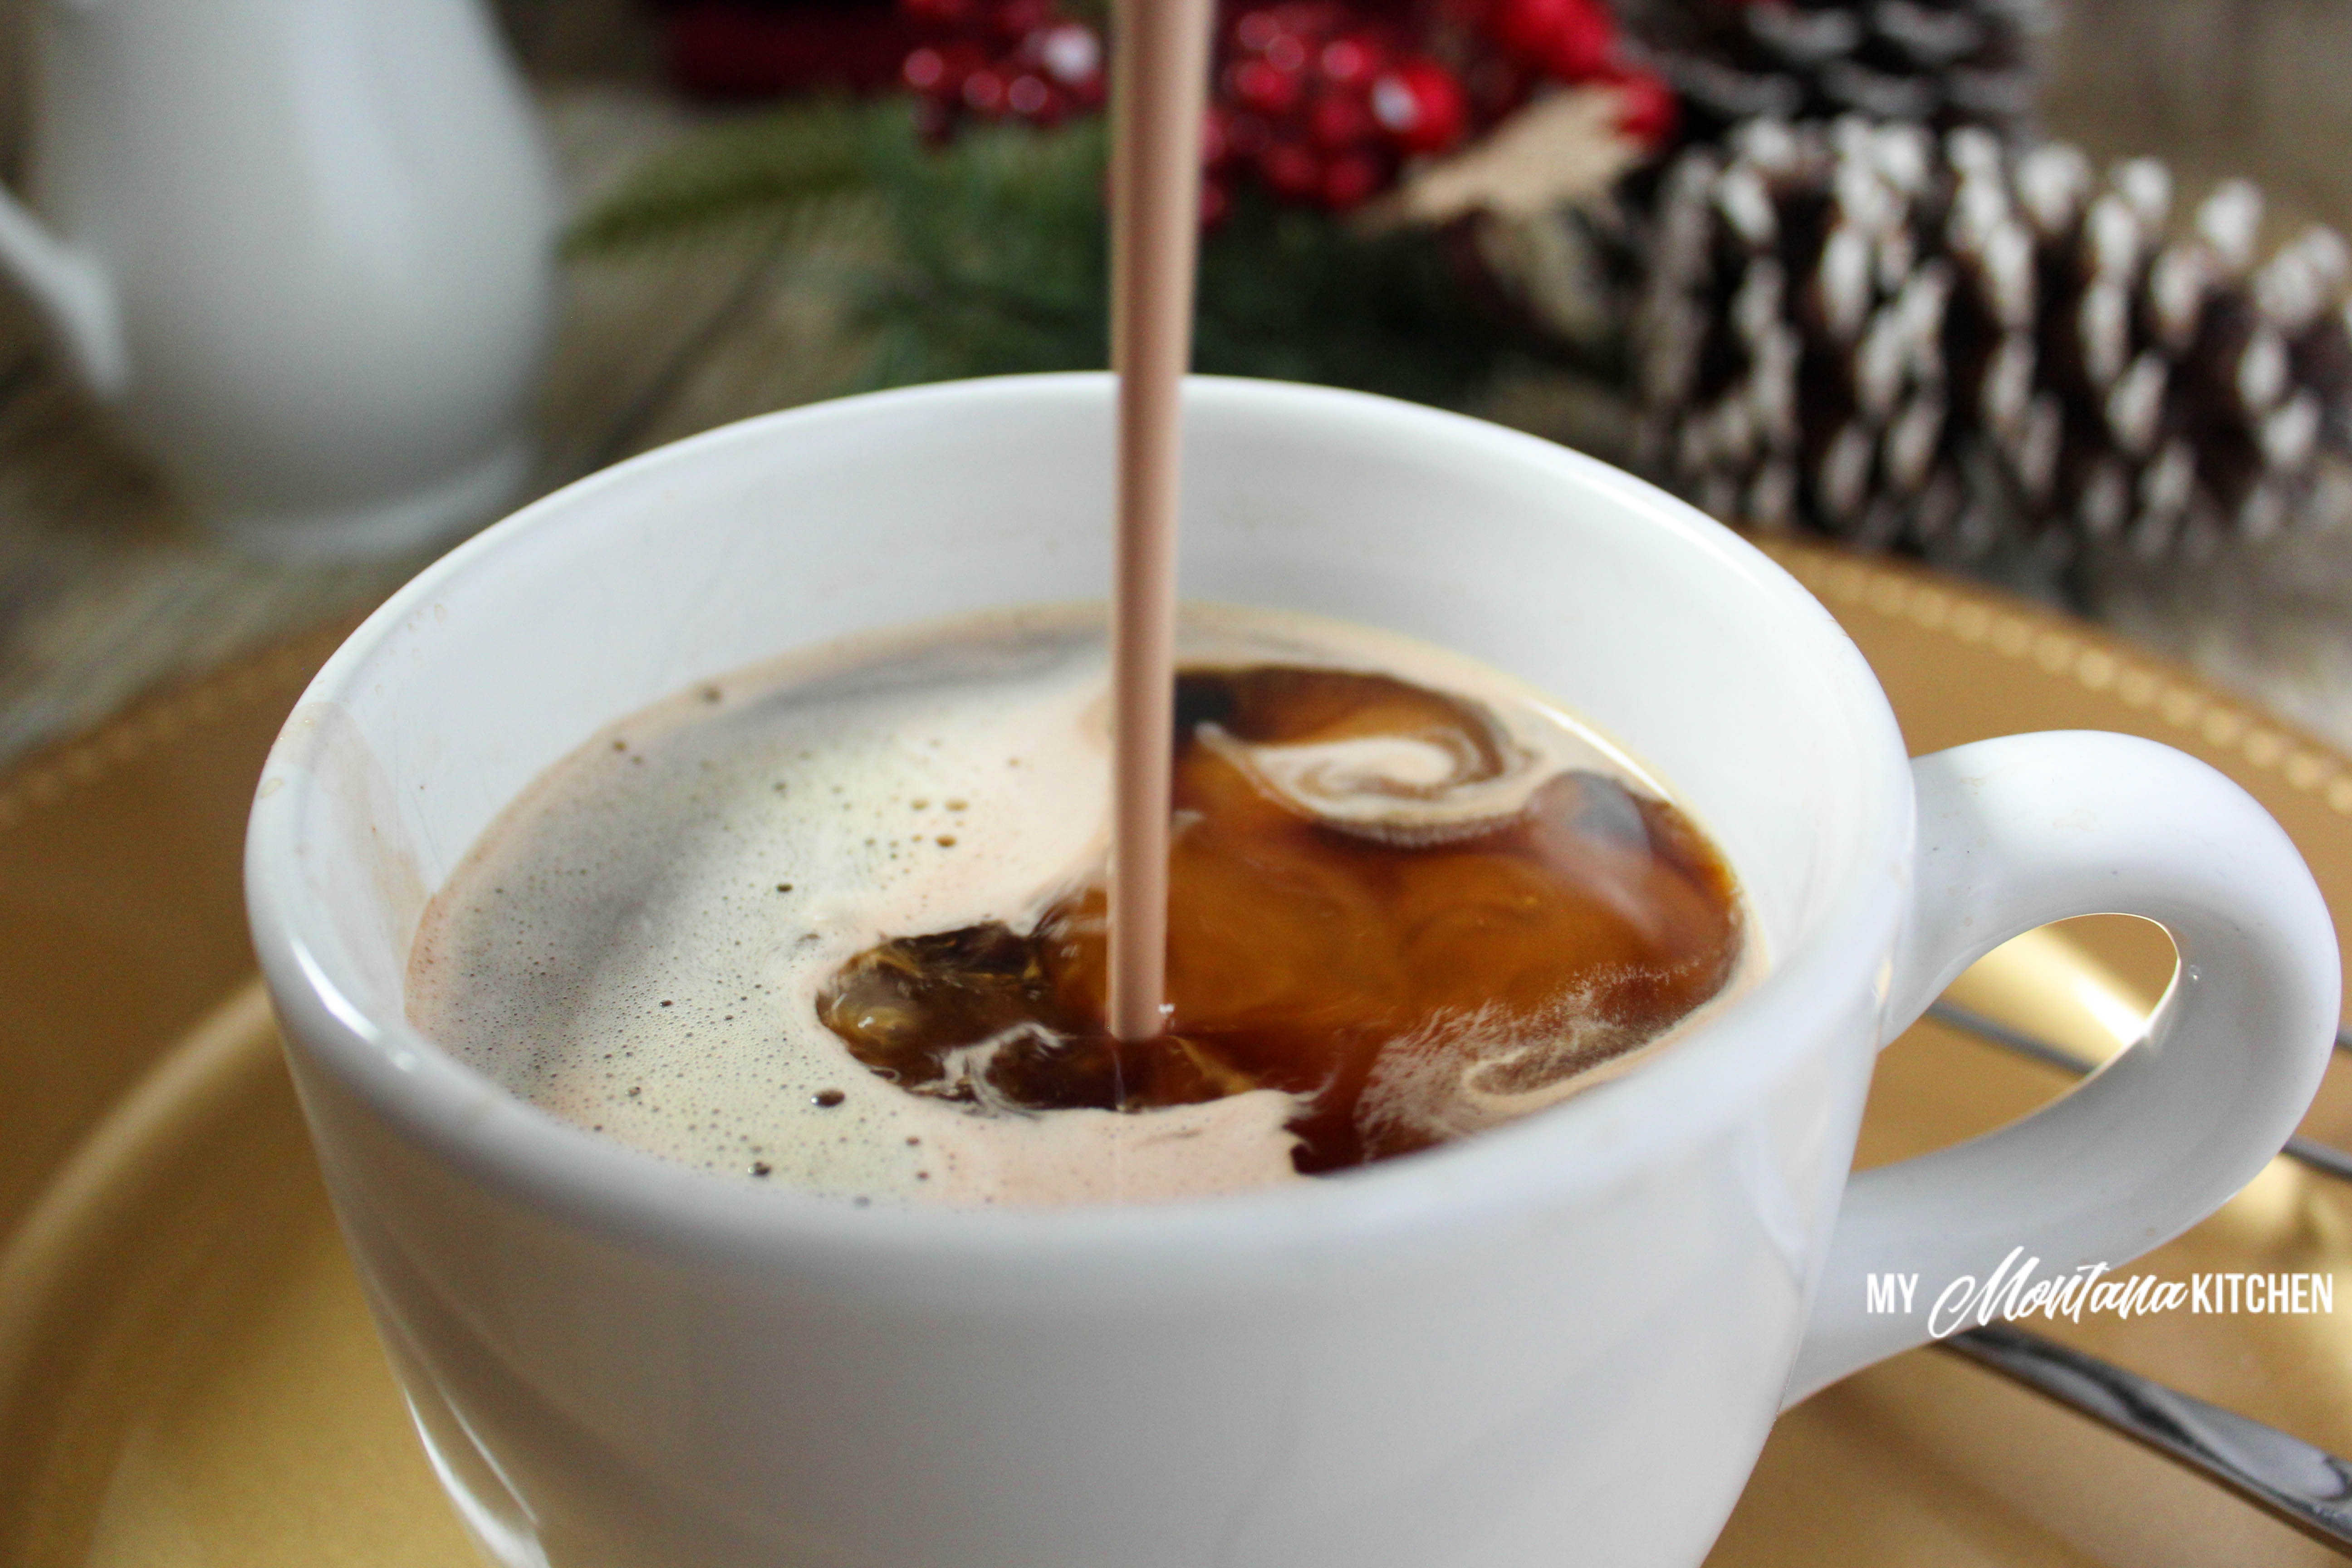 Peppermint Mocha Coffee Creamer (Low Carb, Sugar Free, THM-S) #trimhealthymama #thm #thm-s #coffee #coffeecreamer #peppermint #mocha #lowcarb #sugarfree #peppermintcreamer #lowcarbcoffeecreamer